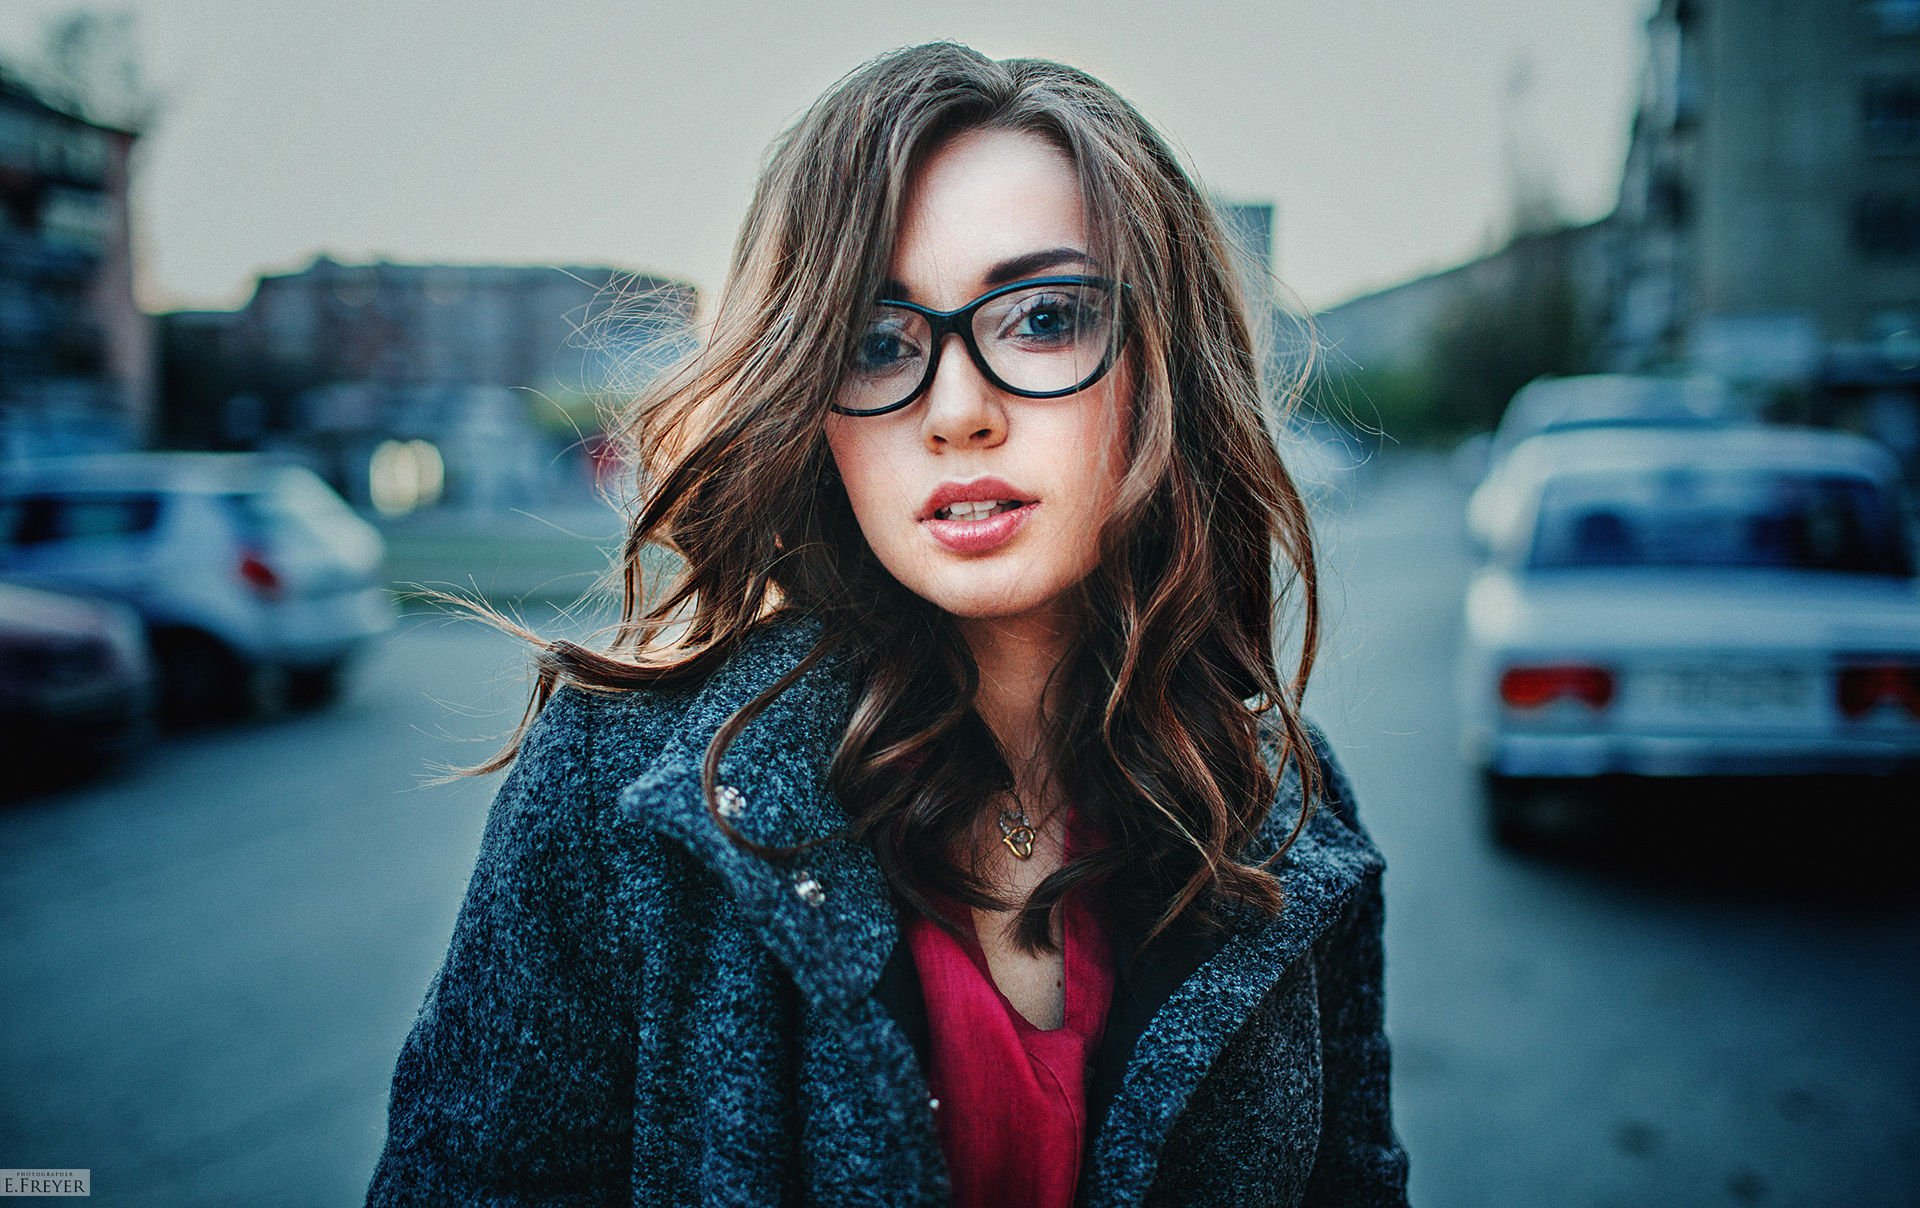 Women - Model  Woman Girl Brunette Glasses Wallpaper